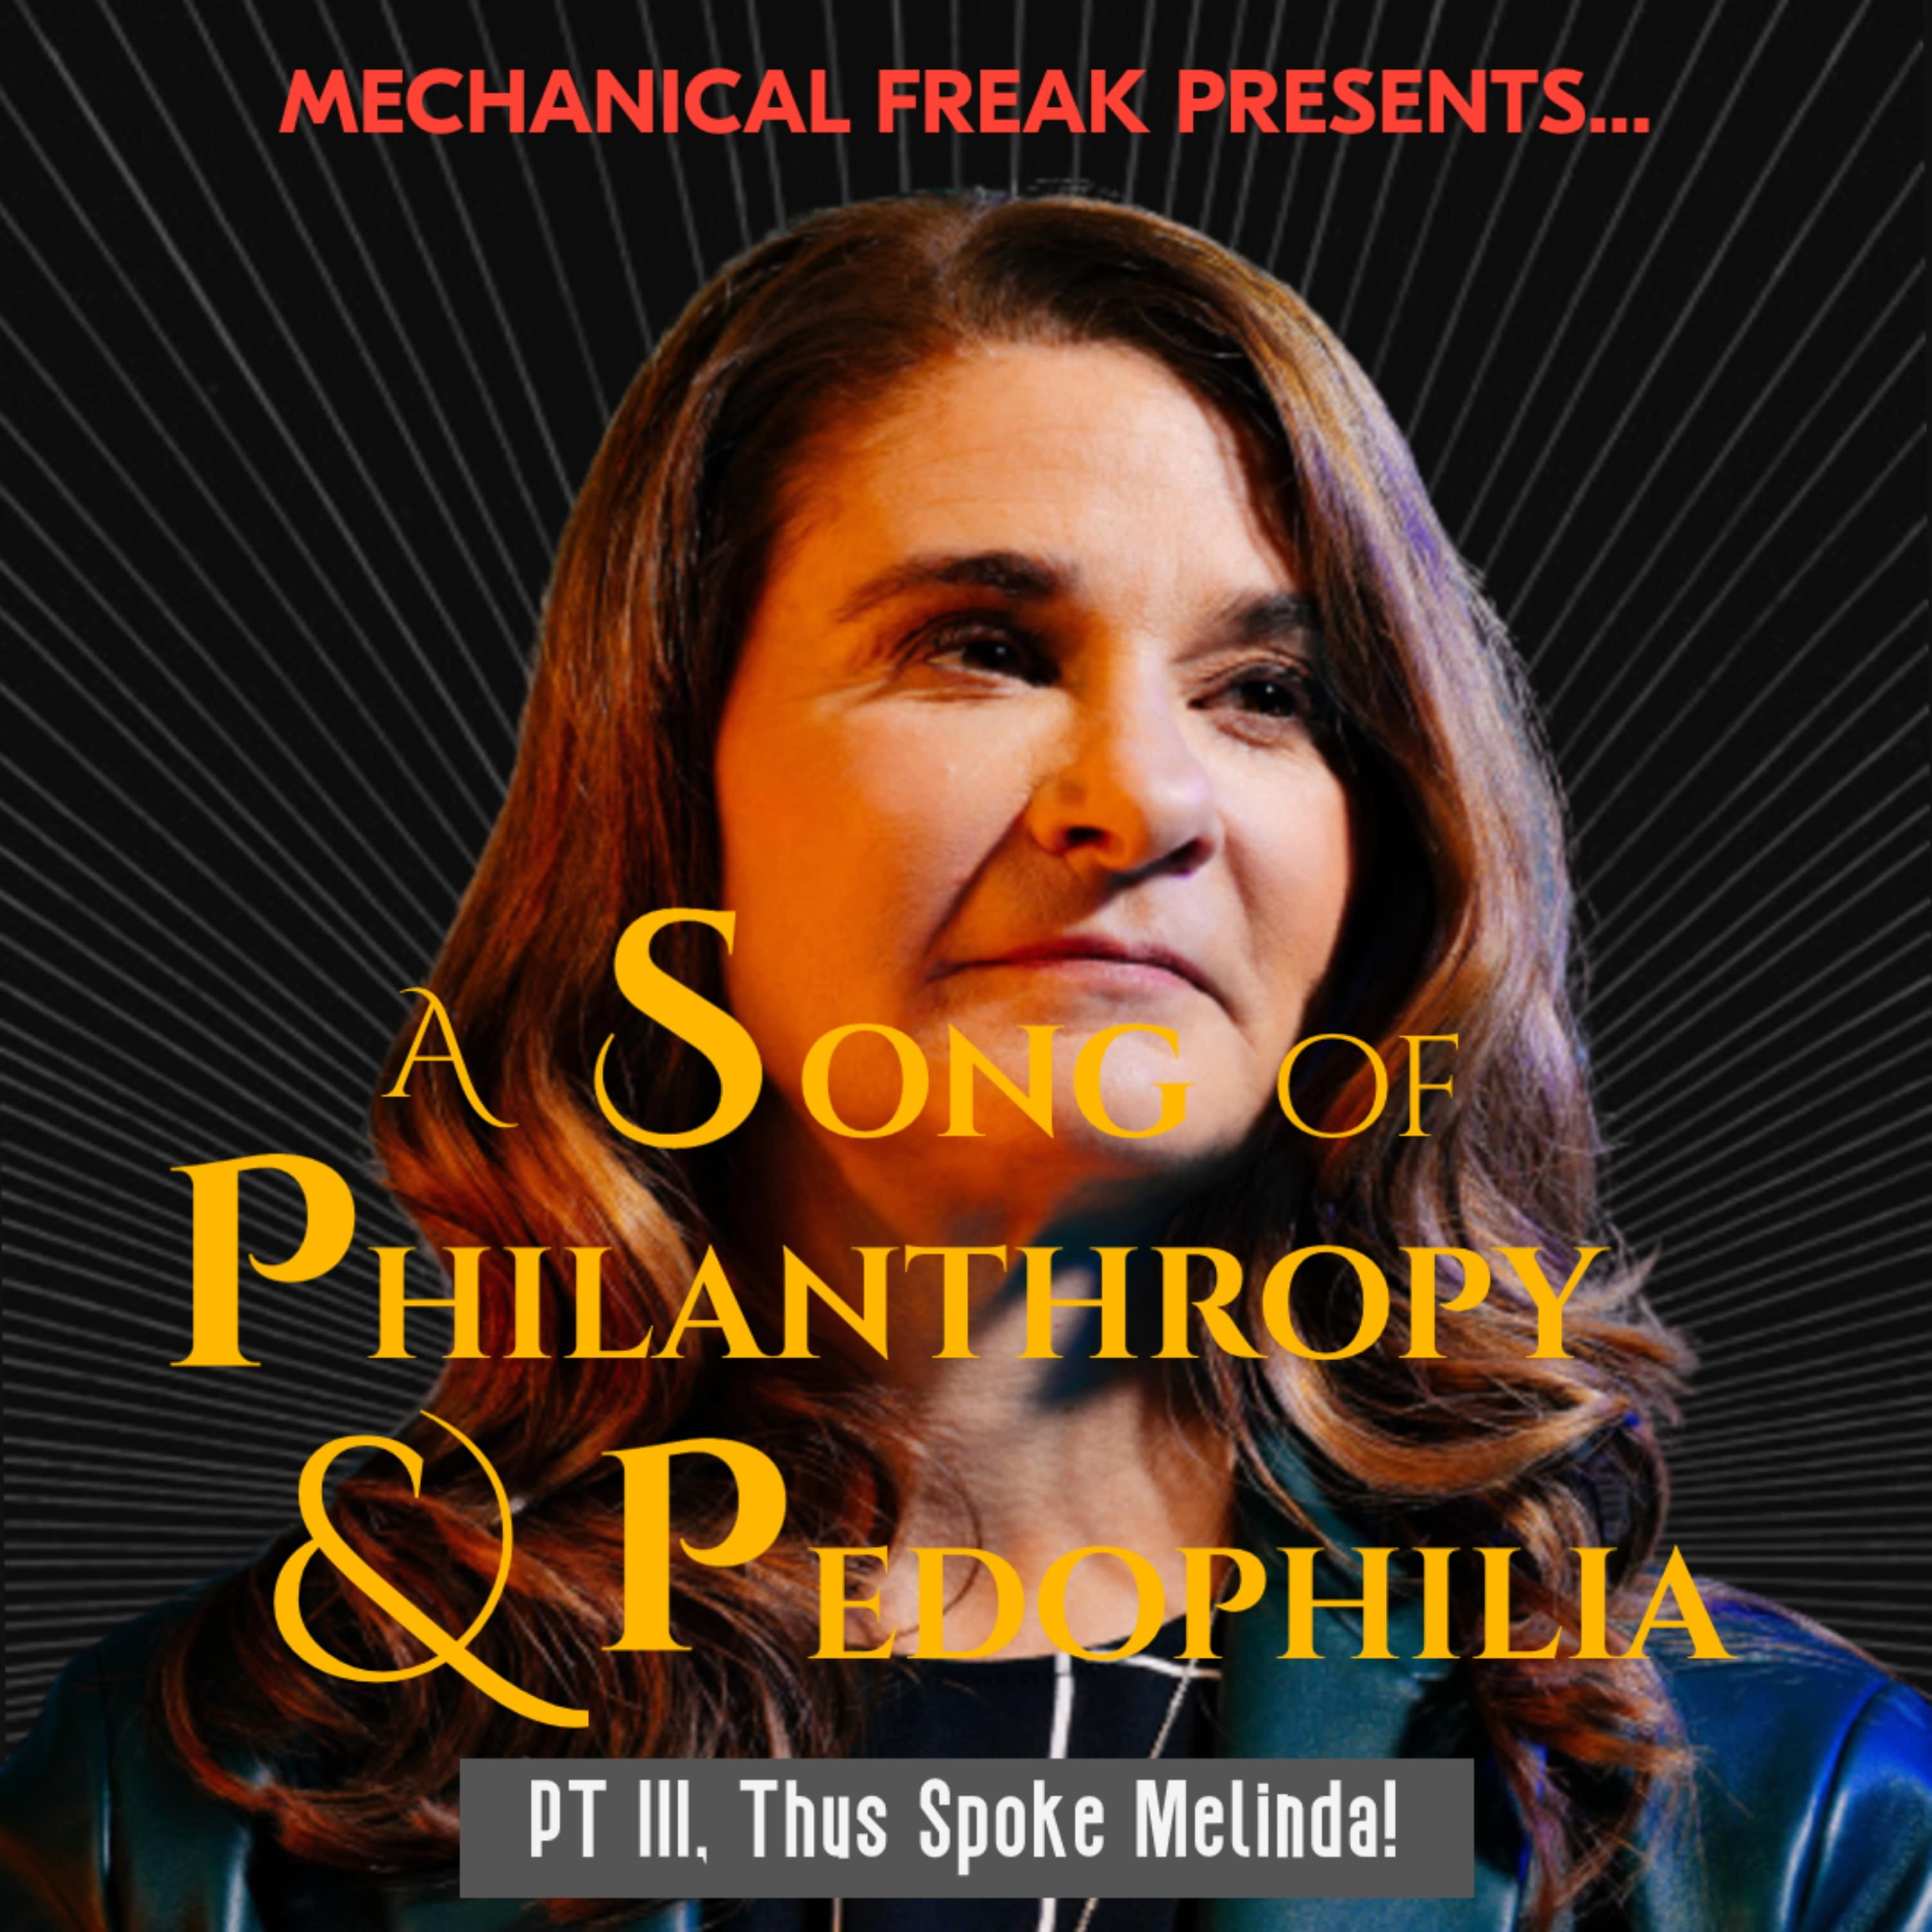 Episode #a-song-of-philanthropy-and-pedophilia-003 cover